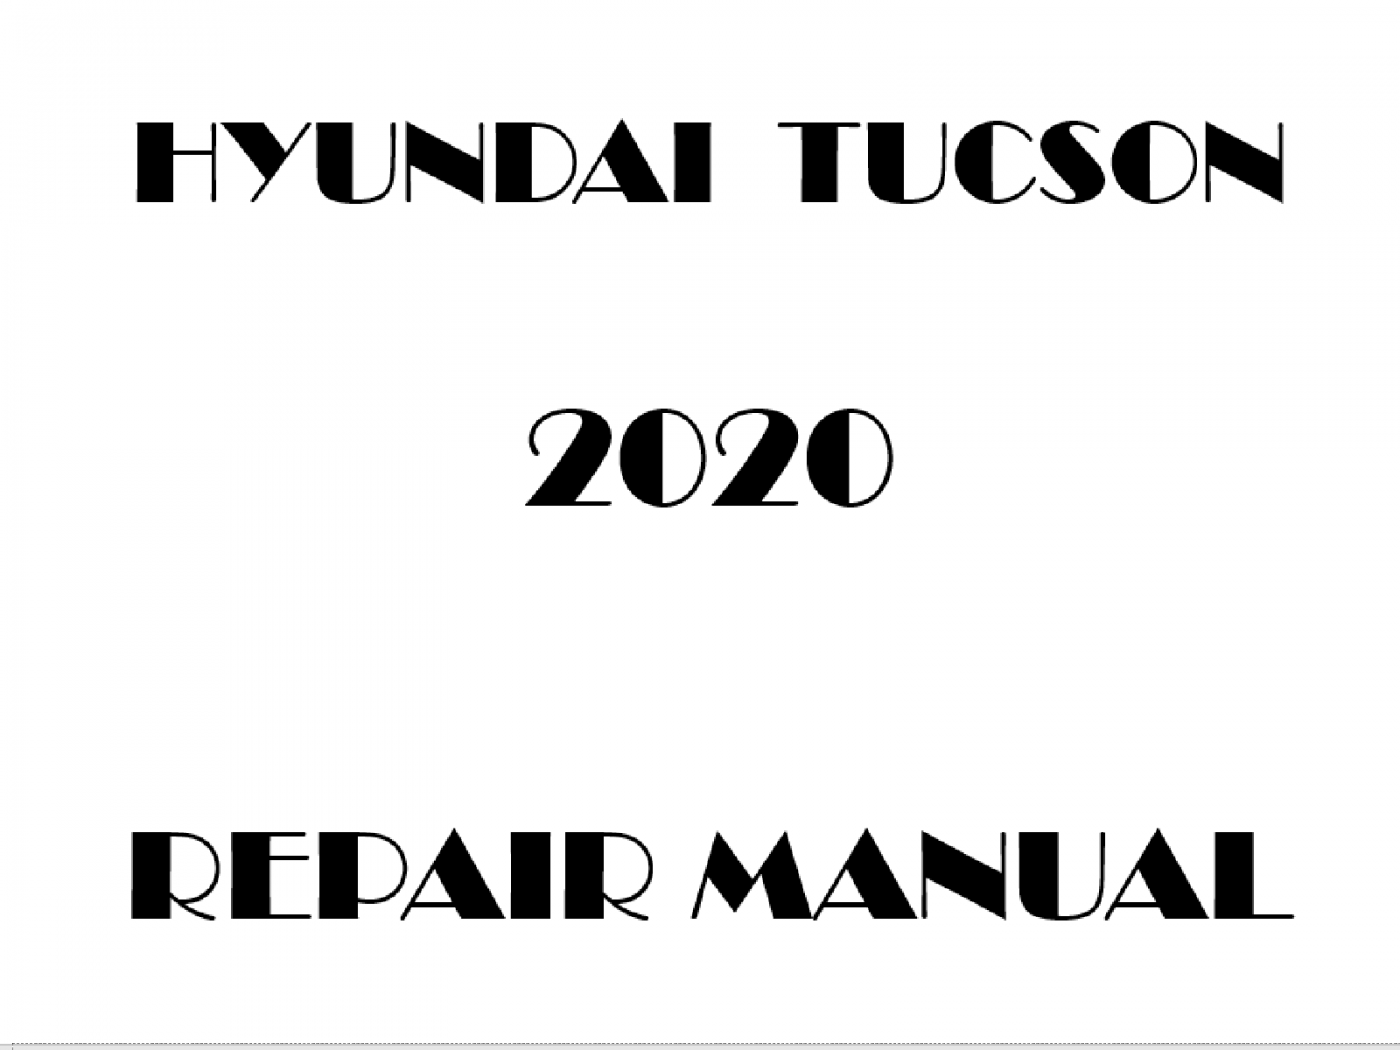 2020 Hyundai Tucson repair manual